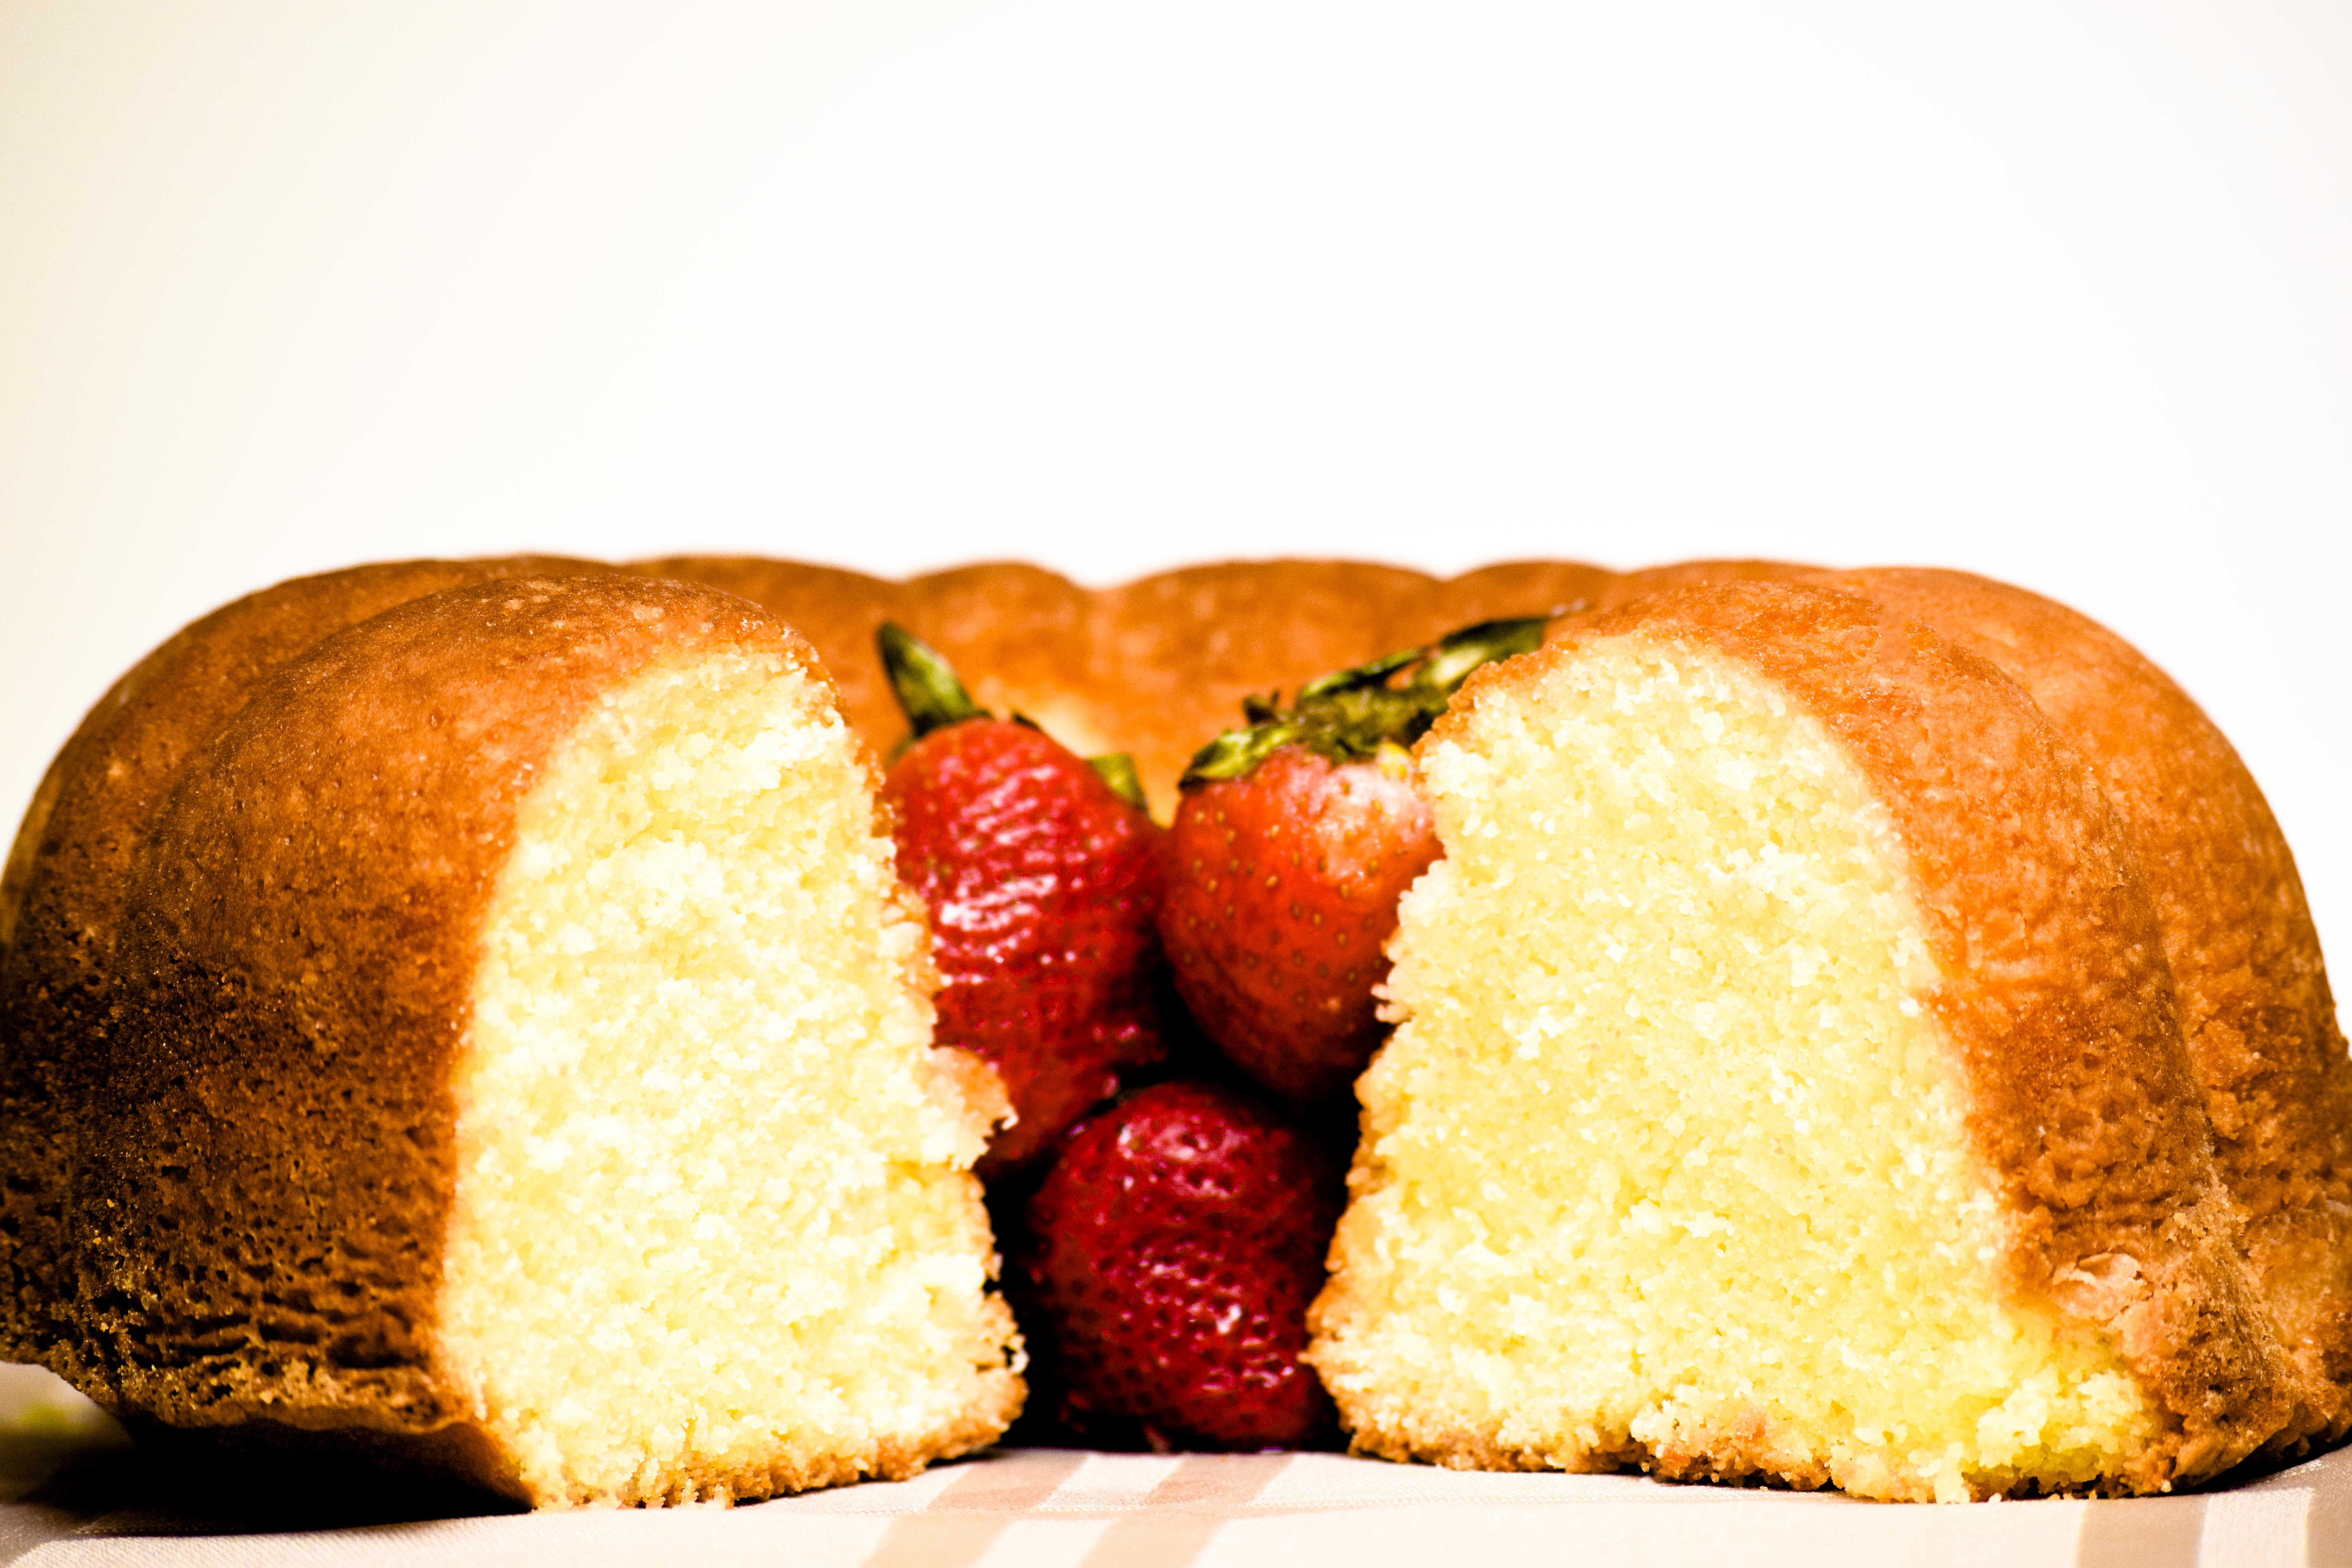 Christopher's Bakery | Pound Cake | A Close Up Look At Our Grandma's Pound Cake and Strawberries